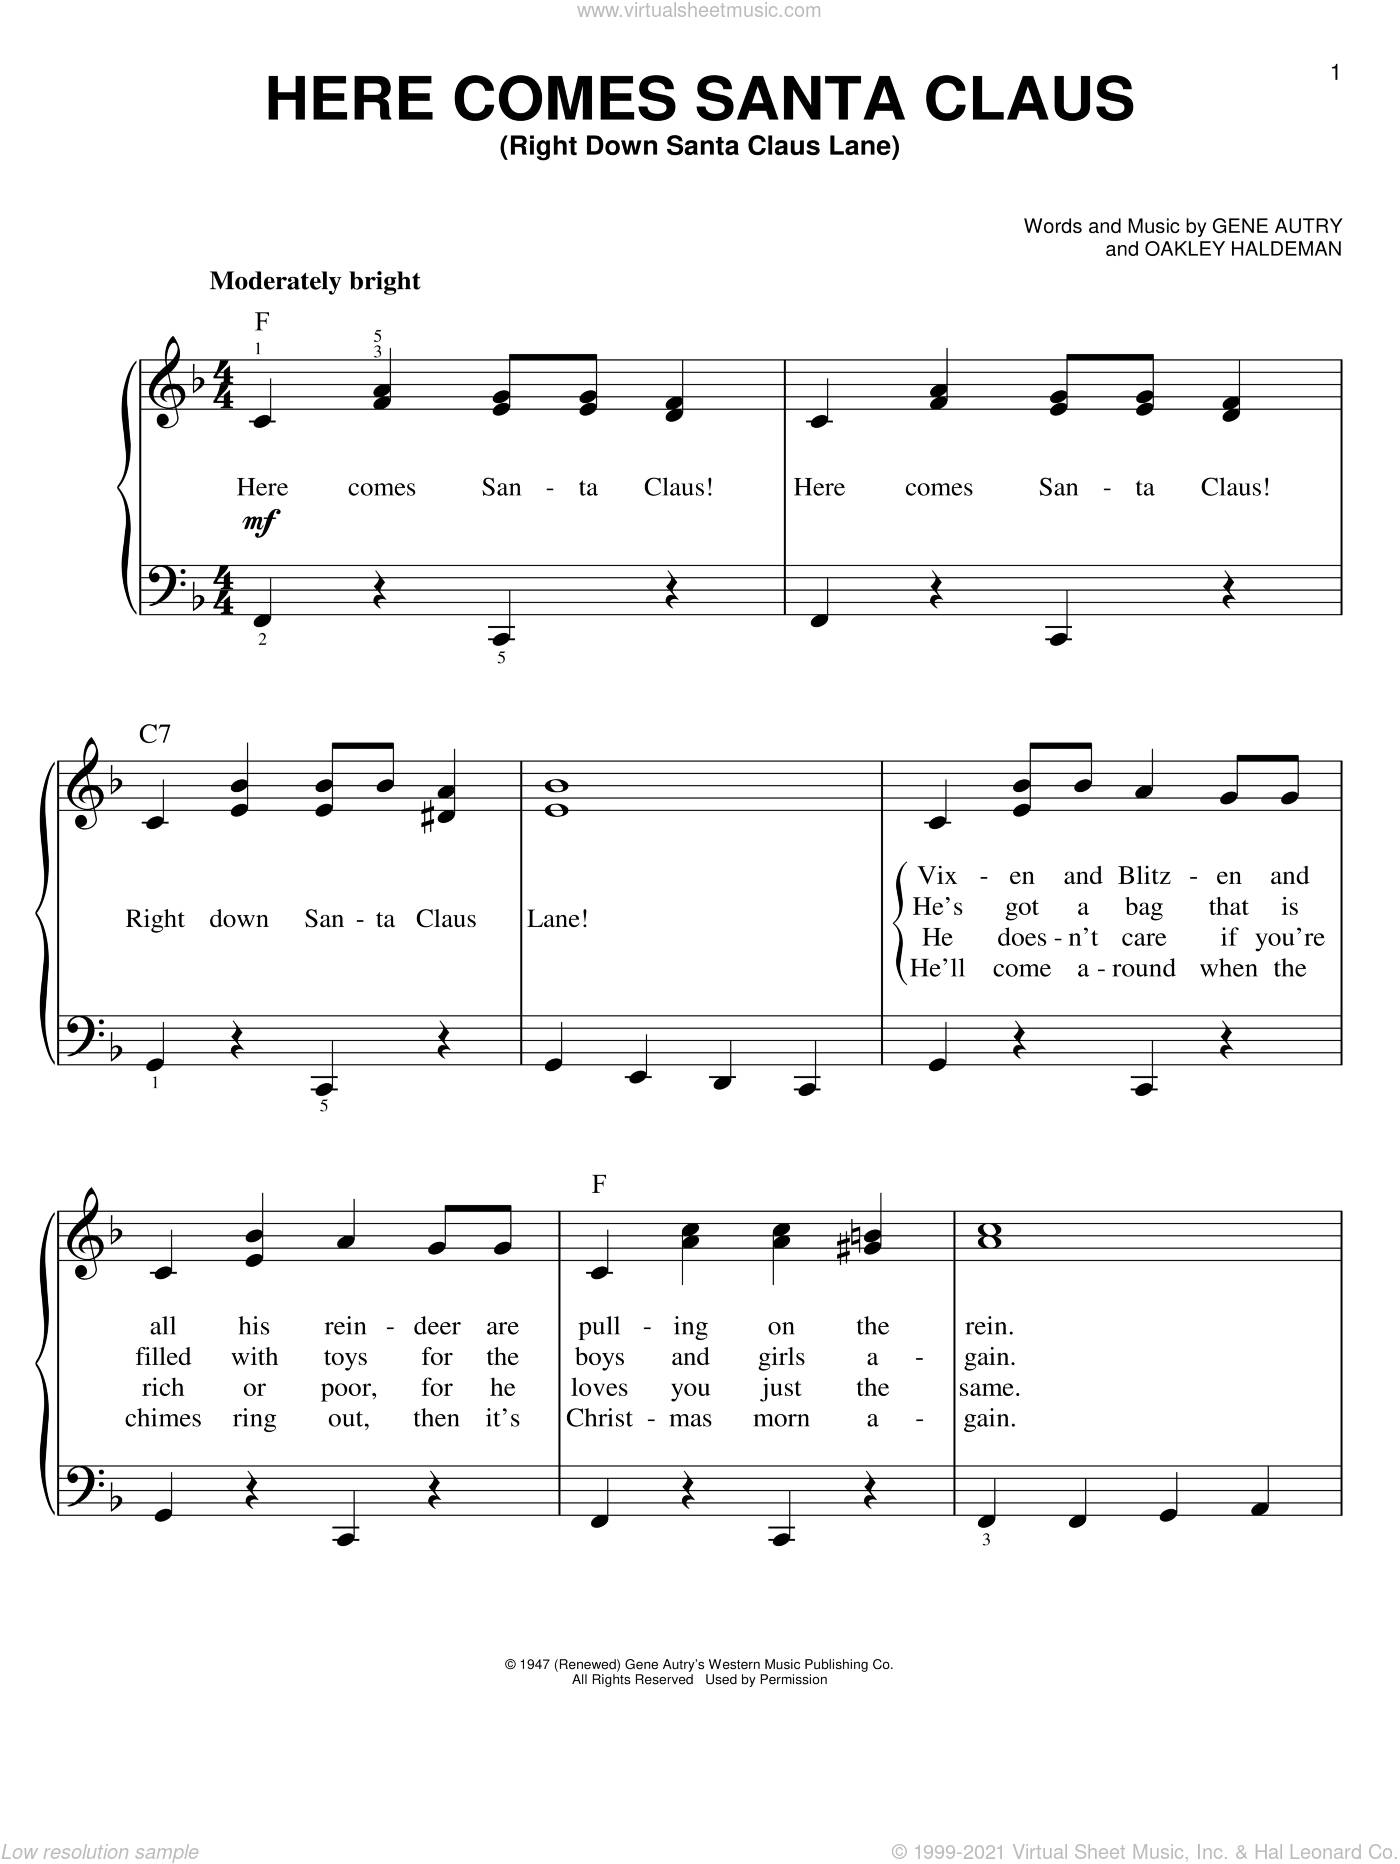 Here Comes Santa Claus (Right Down Santa Claus Lane) sheet music for piano solo (chords) by Oakley Haldeman